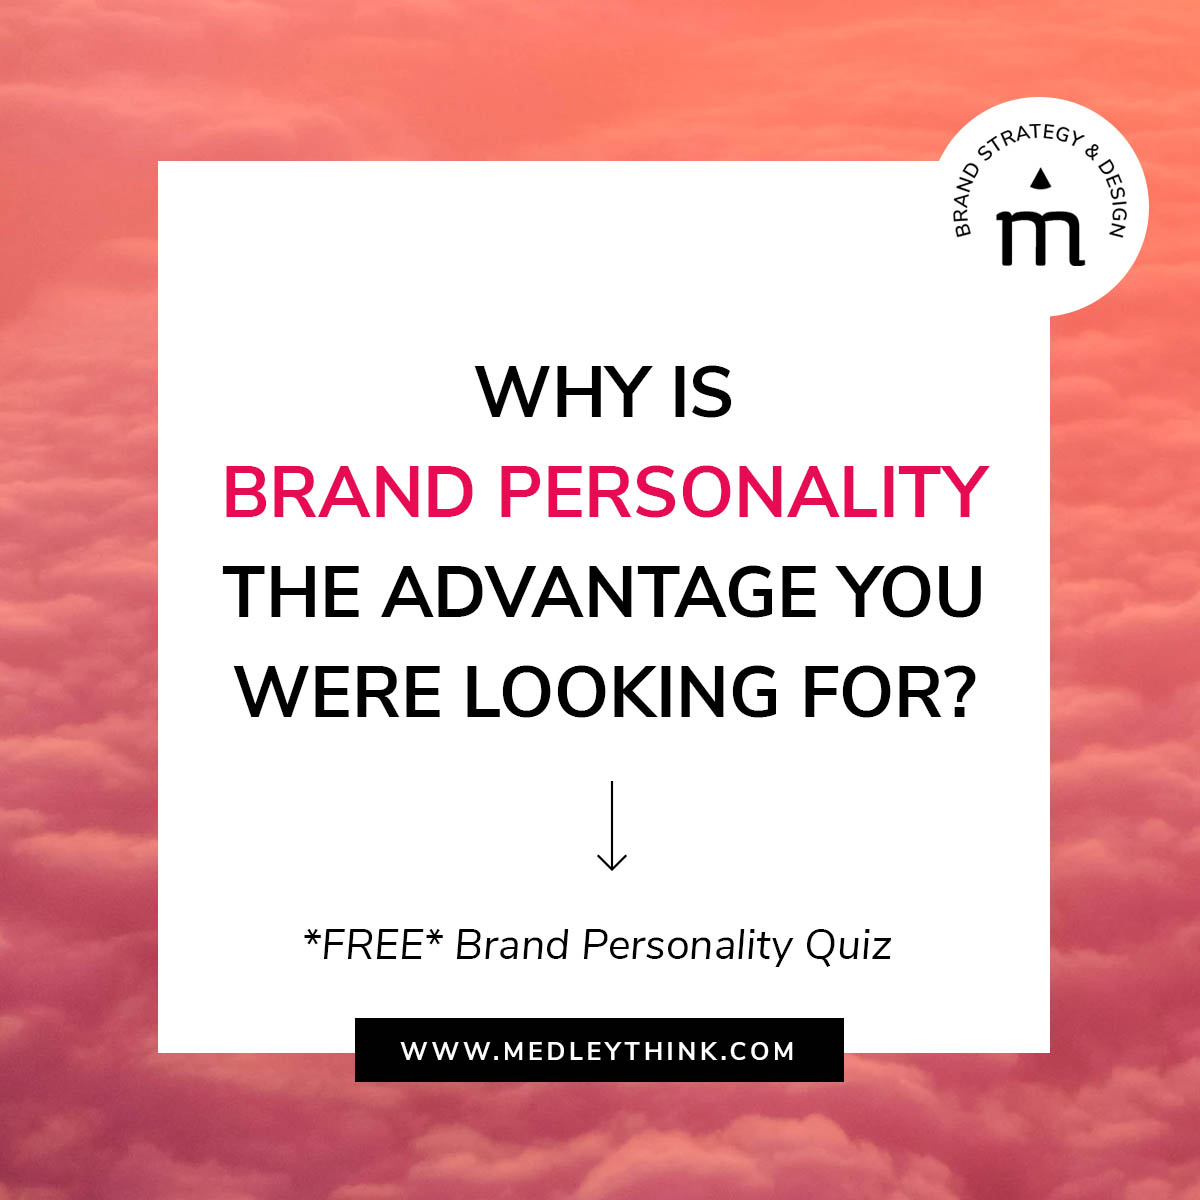 Why Brand Personality Is The Advantage You Were Looking For